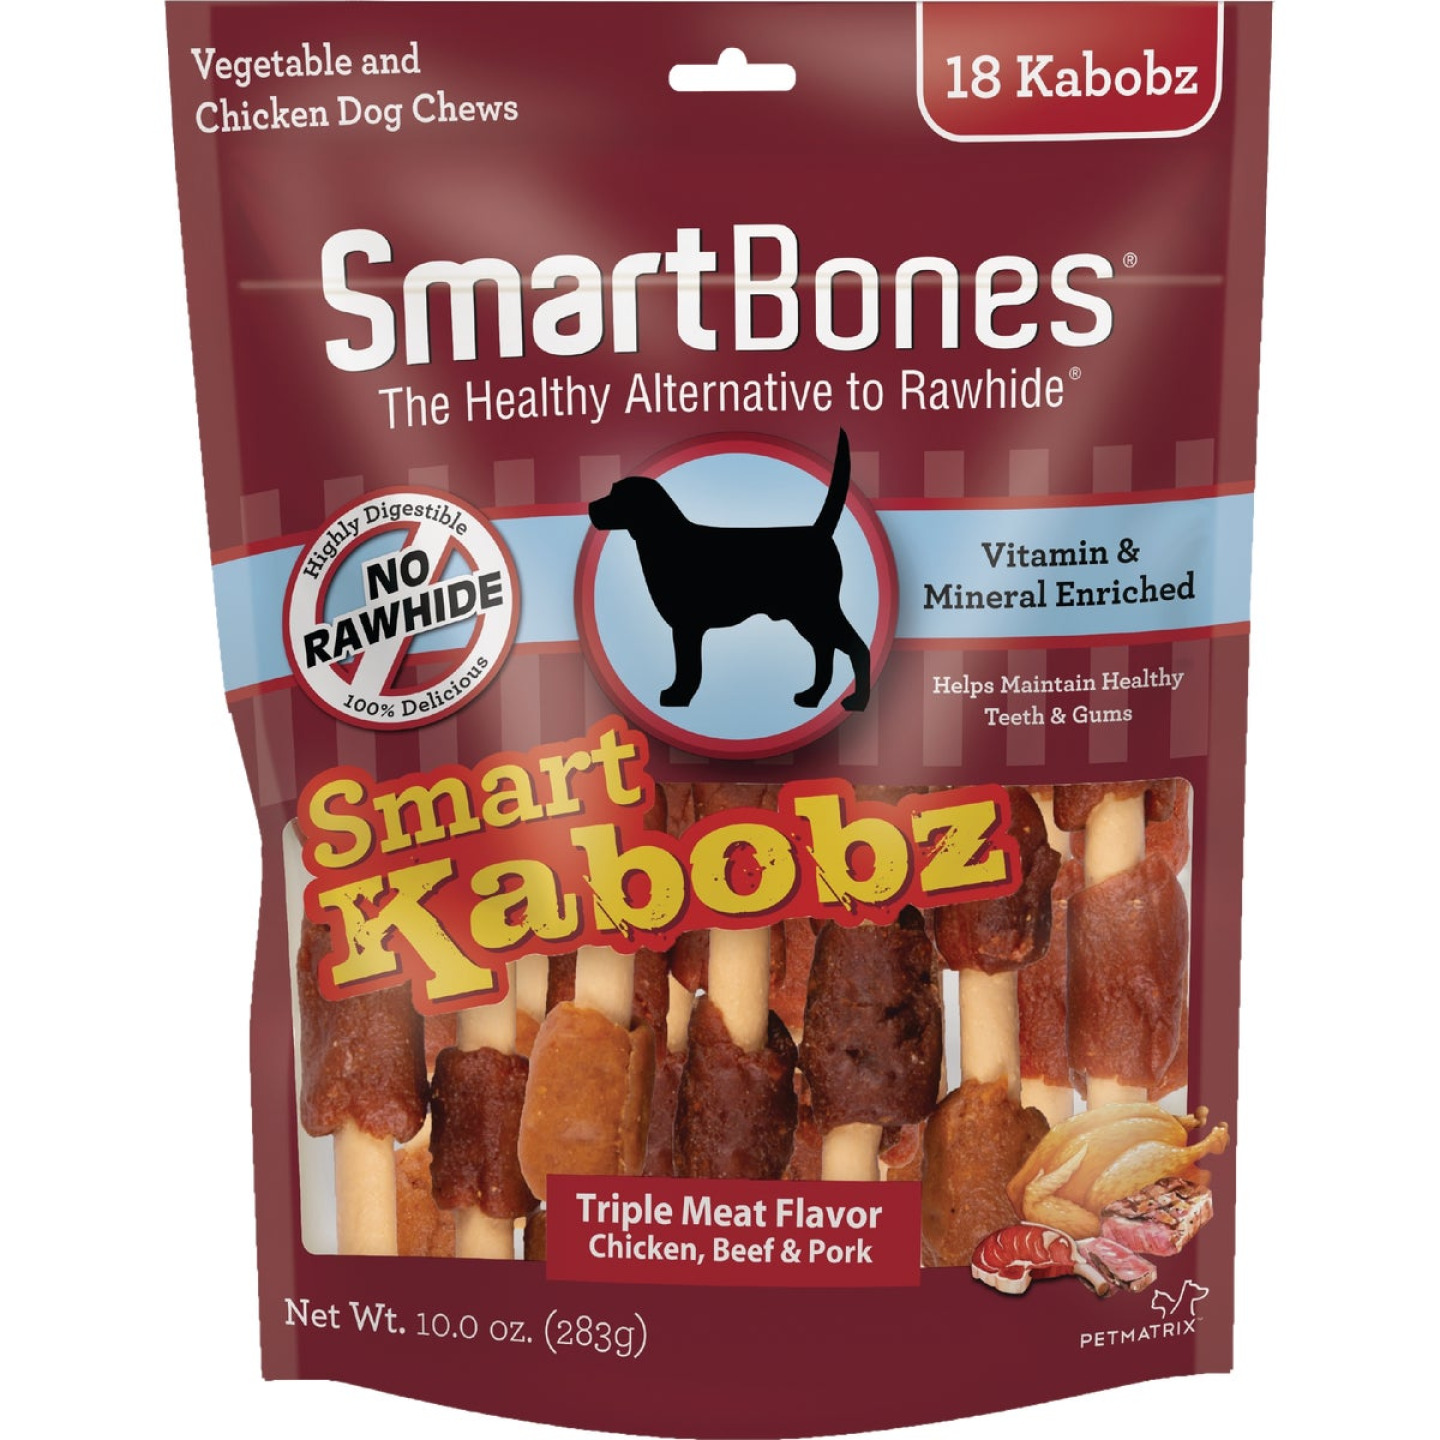 SmartBone Kabobz Chicken, Beef, & Pork Chew Bone (18-Pack) Image 1